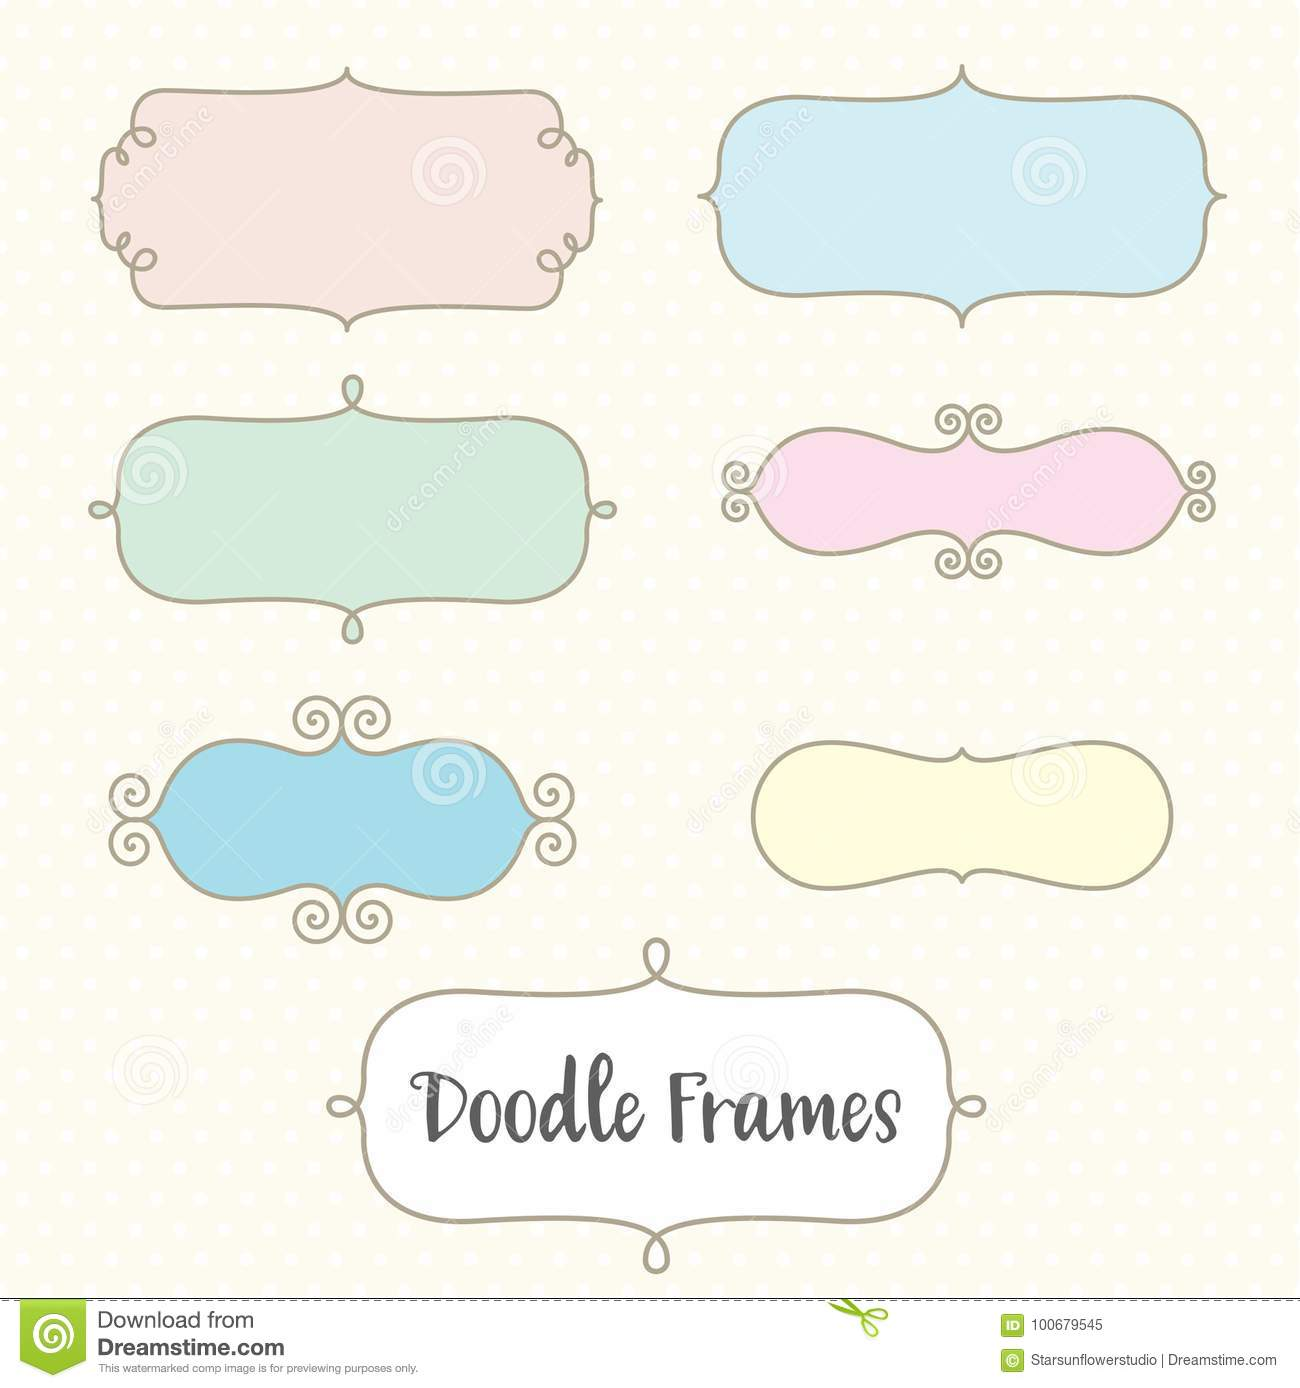 Cute Doodle Frame Borders Set Stock Vector - Illustration of borders ...